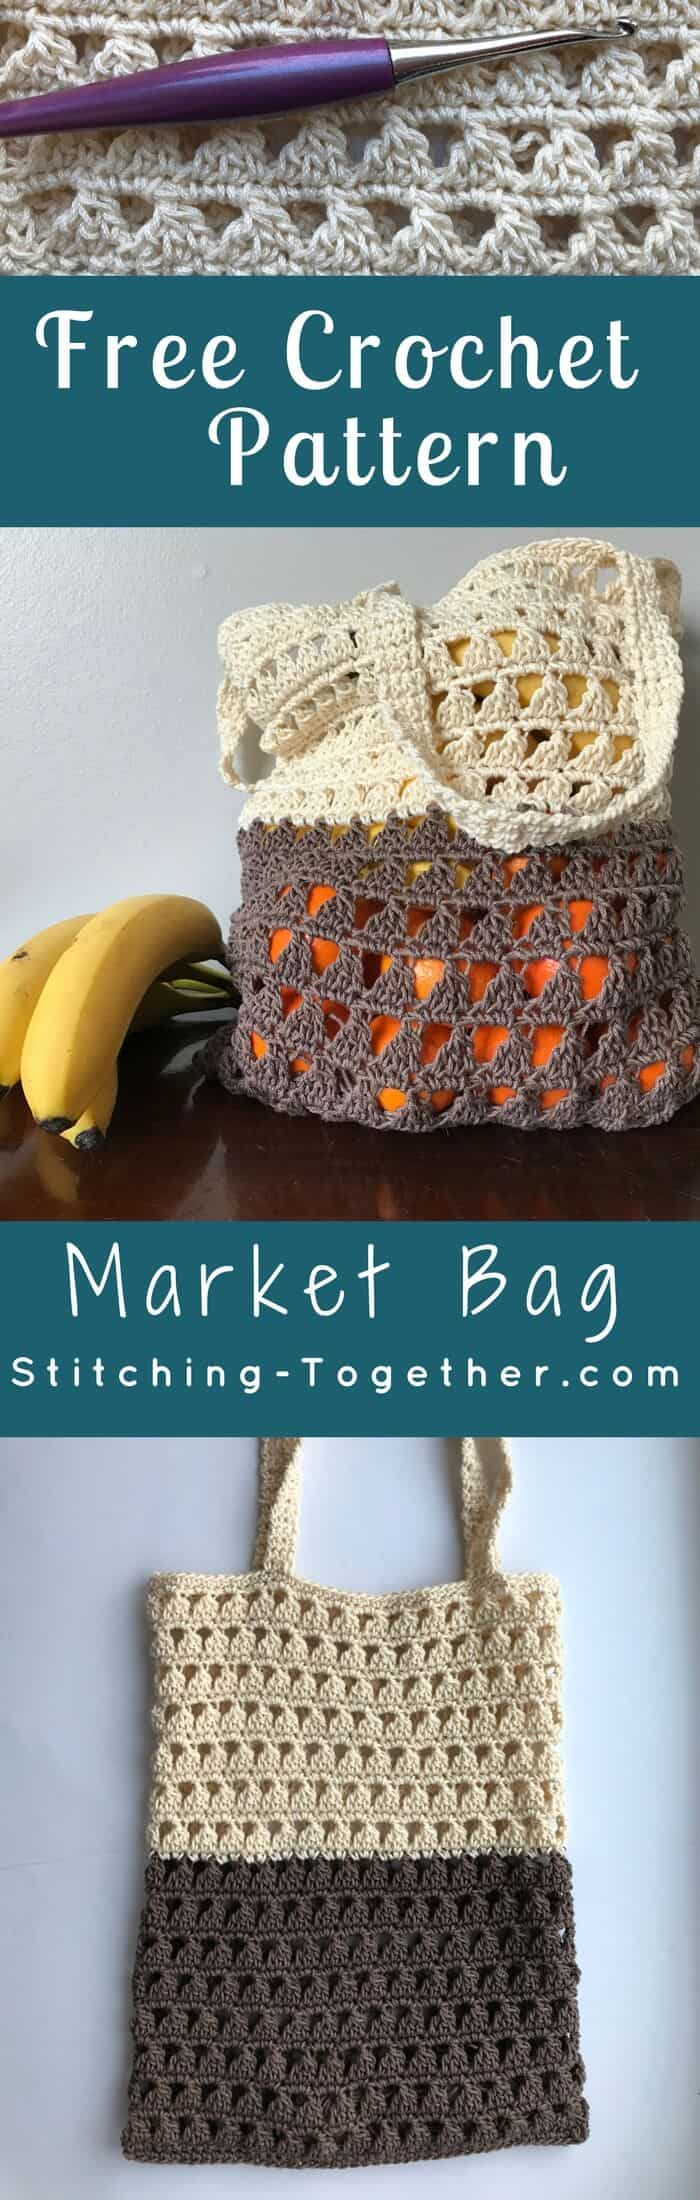 This crochet grocery bag will be perfect for the Farmers Market this summer! Not only is it a green DIY but this market bag is also so stylish! You can start on this market tote today with the free crochet pattern!